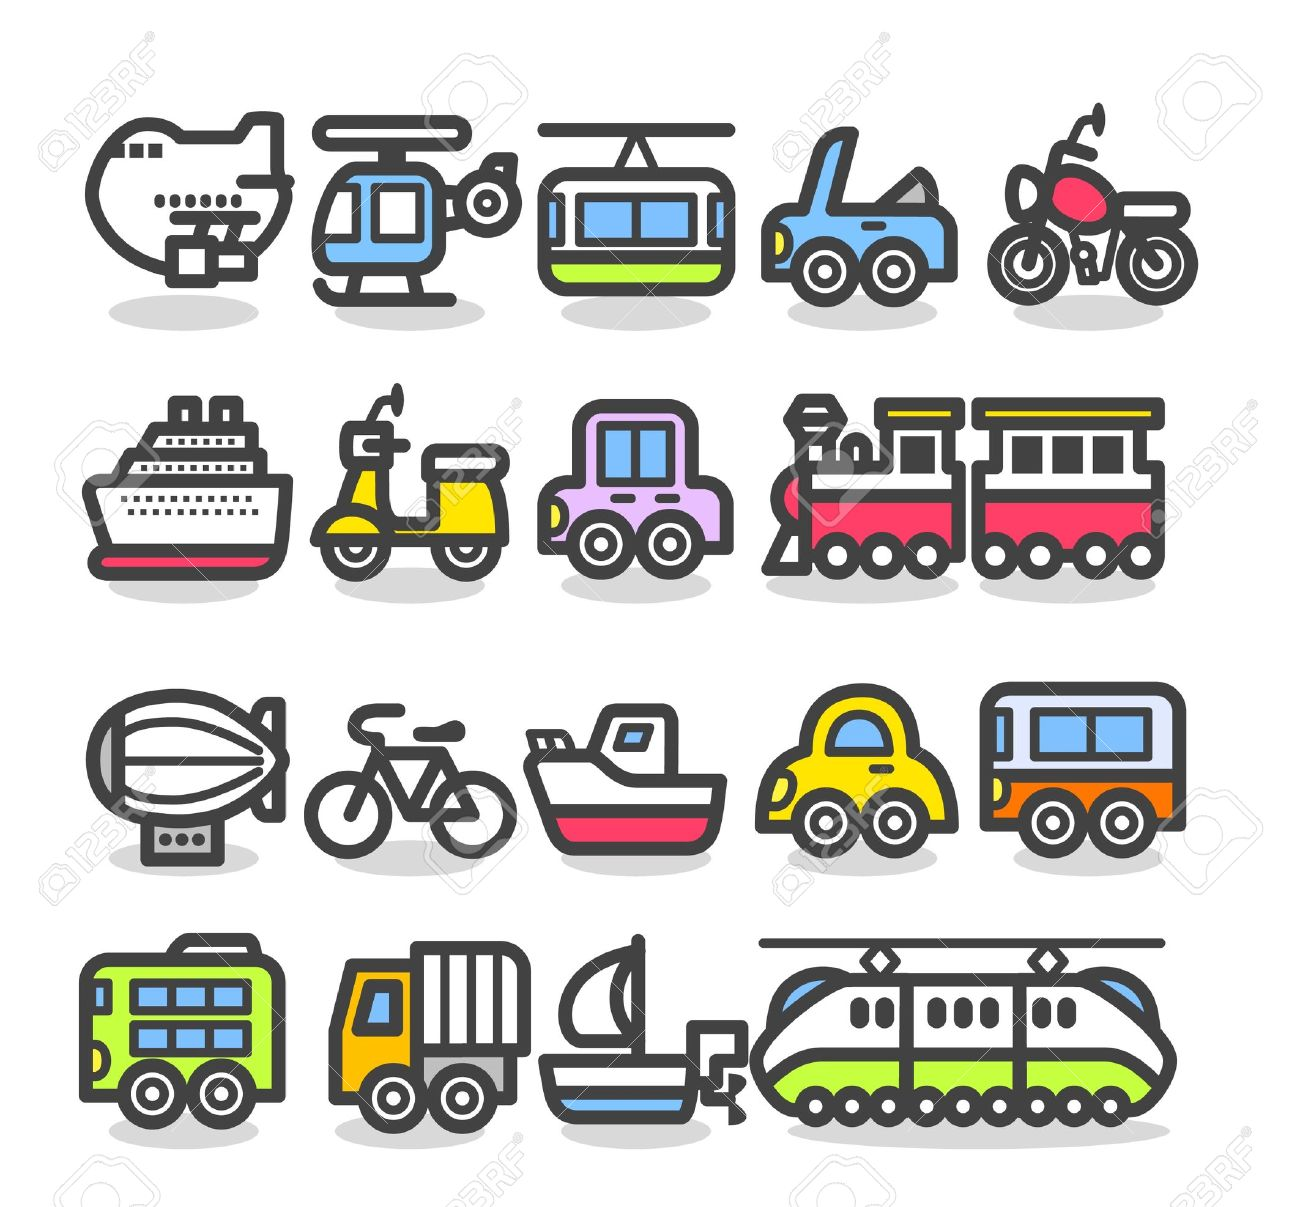 Cute Simple Transportation Icon Royalty Free Cliparts, Vectors.